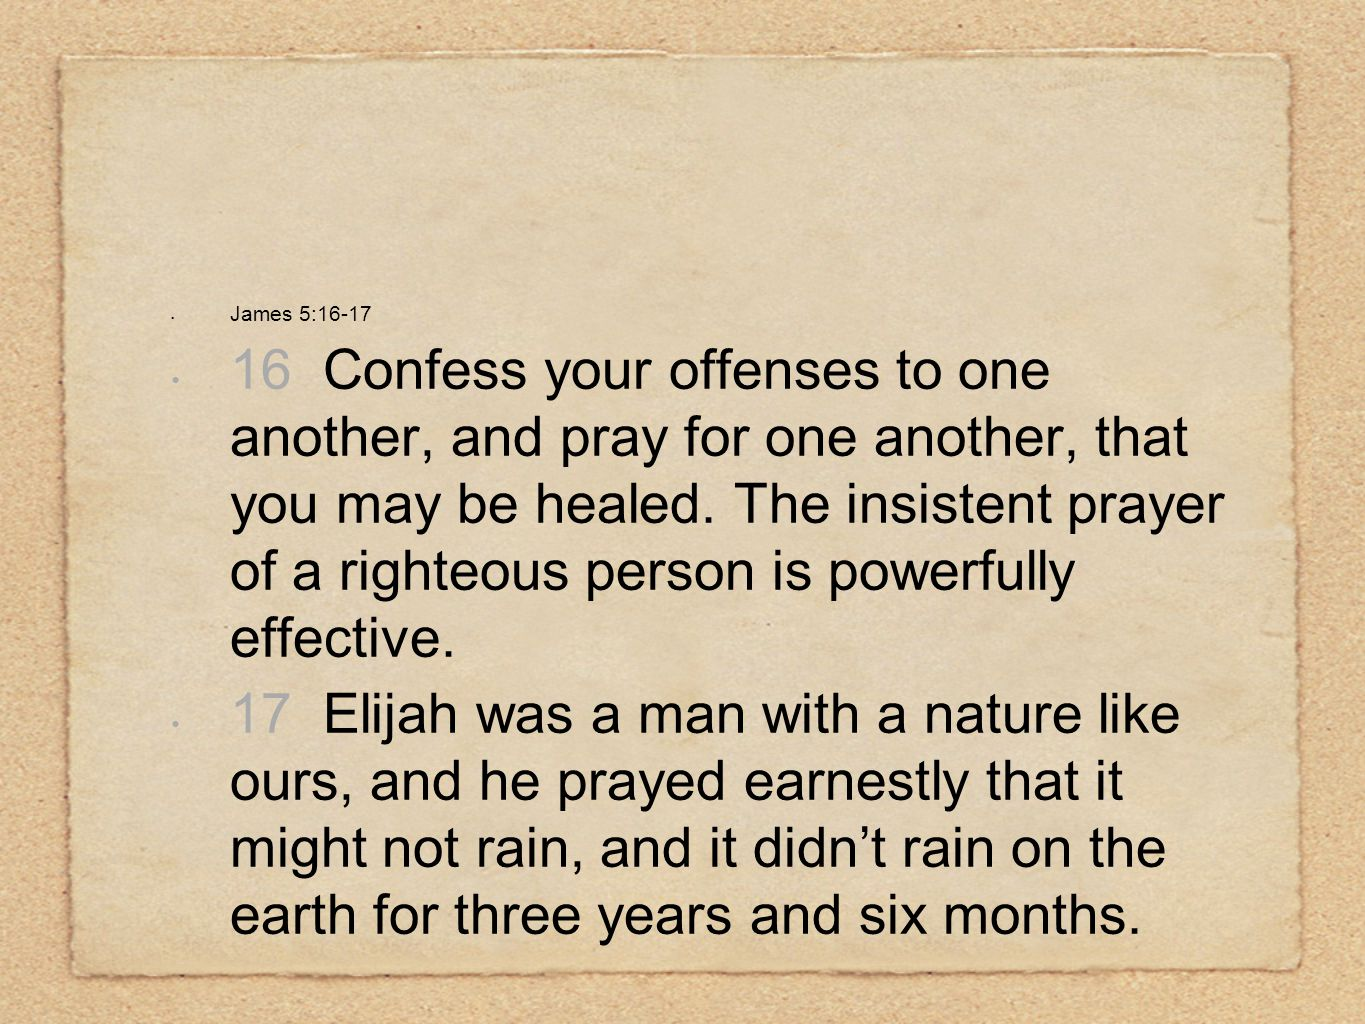 James 5:16-17 16 Confess your offenses to one another, and pray for one another, that you may be healed.